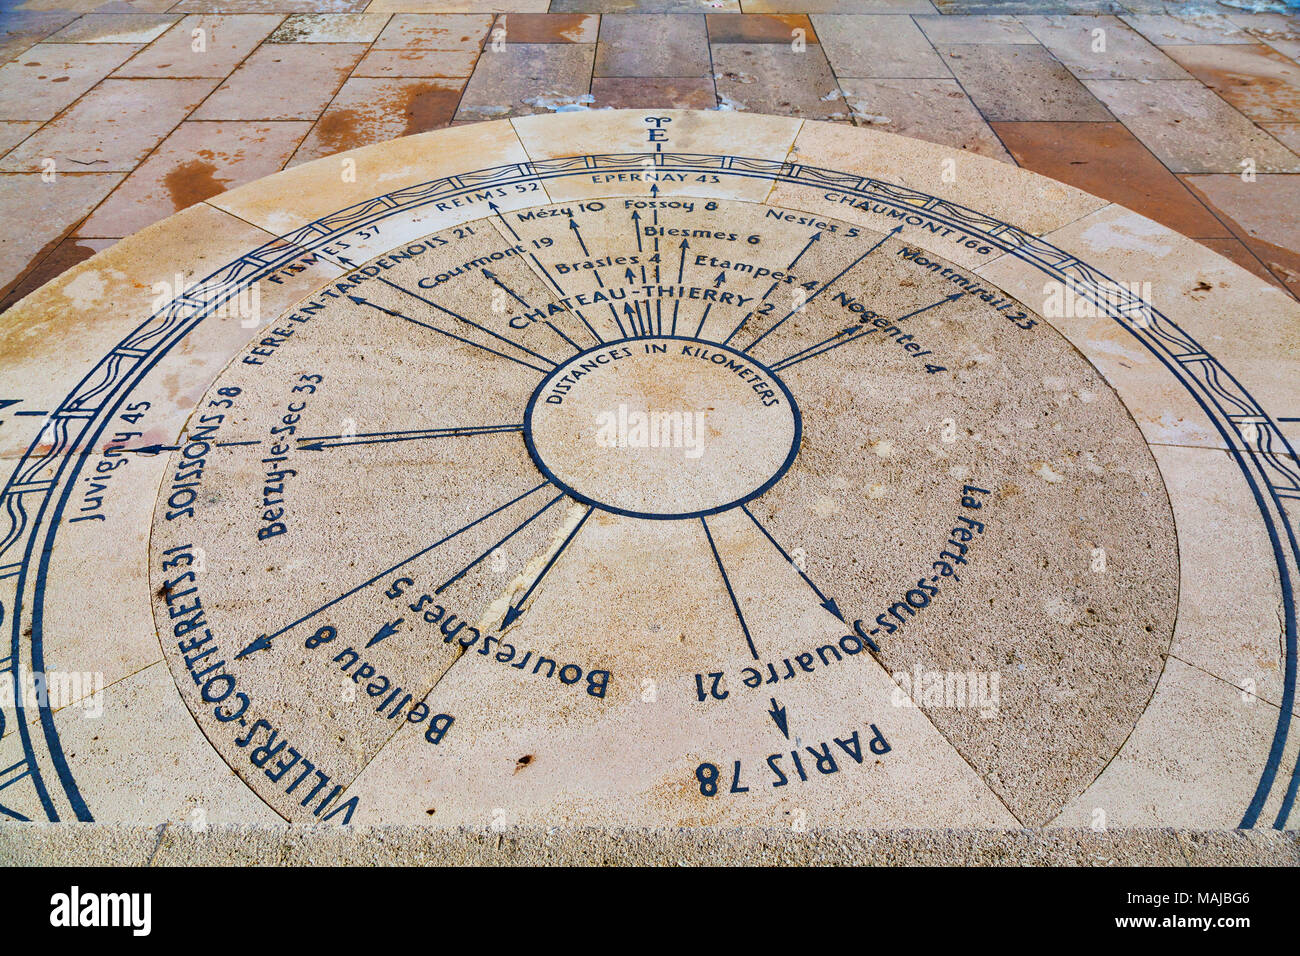 The Château-Thierry American Monument, directional indicator pointing to the relevant battle fields - Stock Image